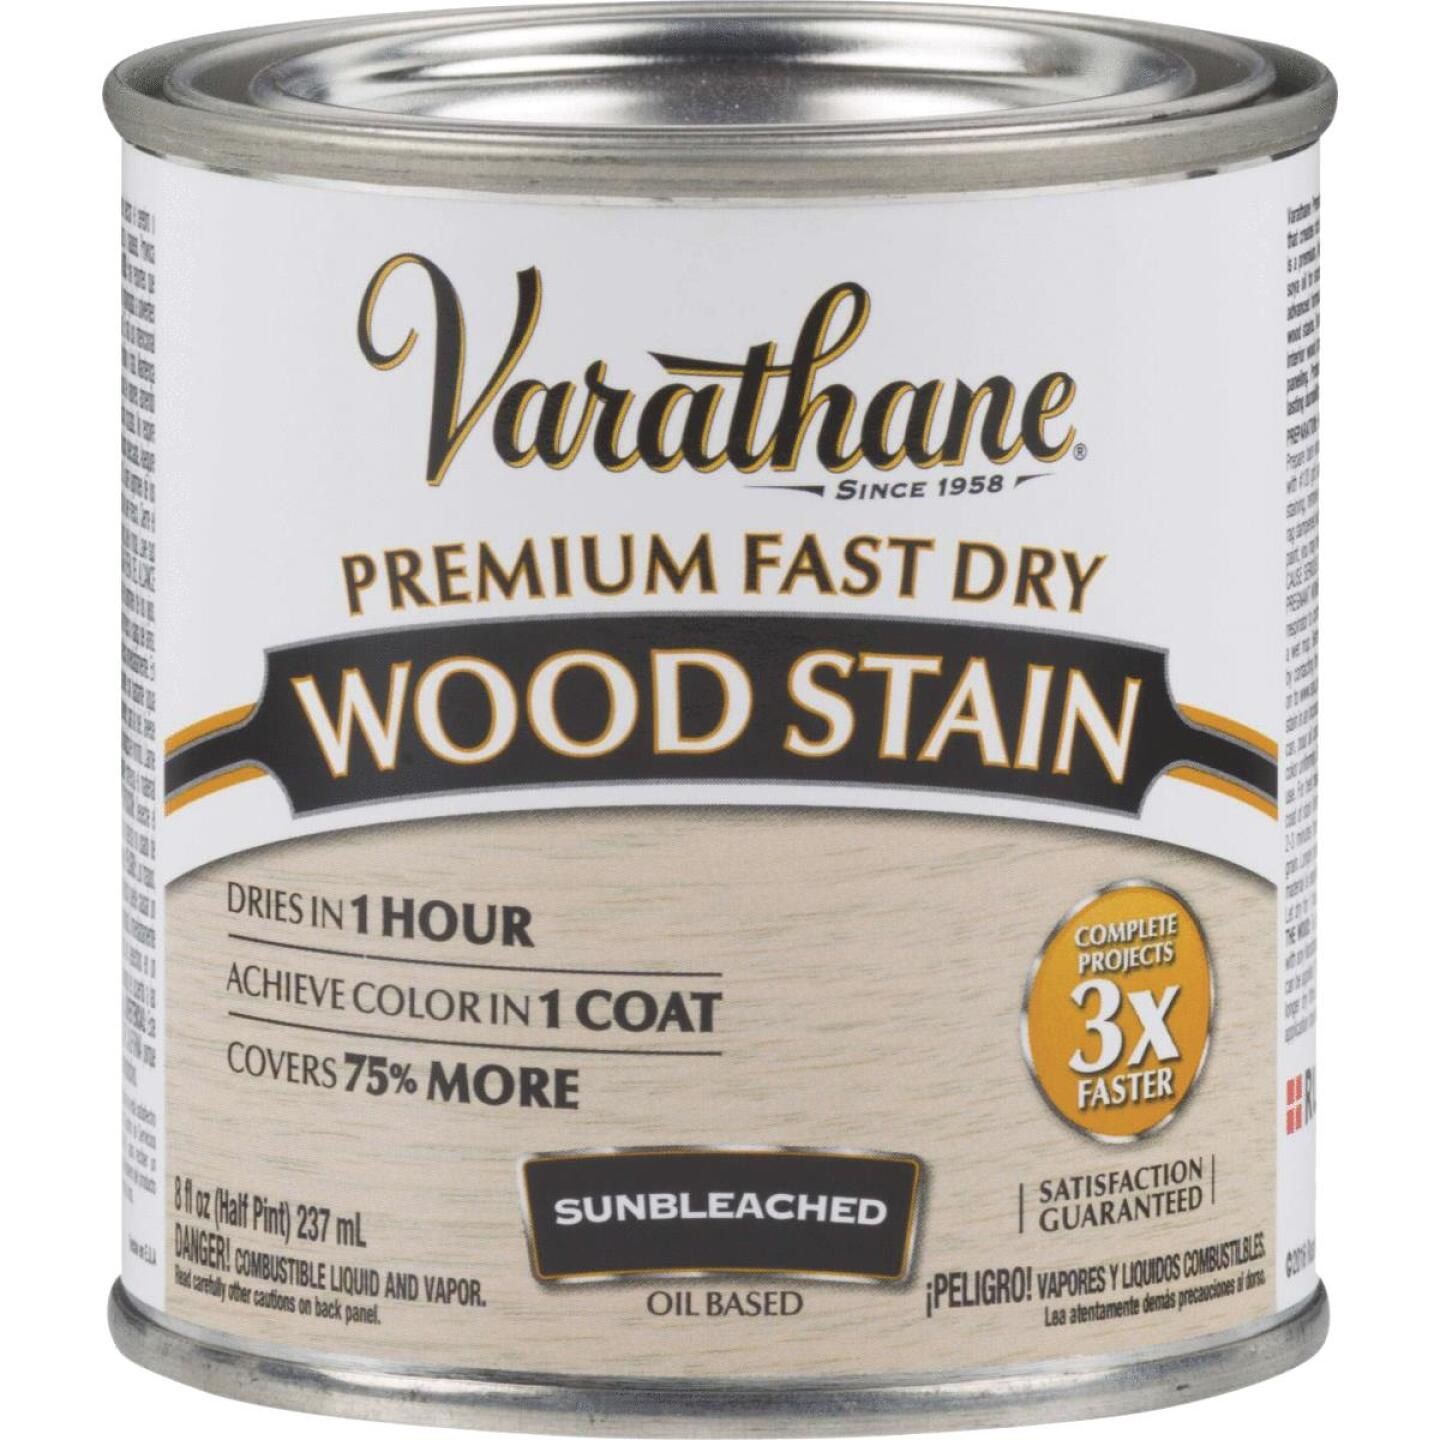 Varathane Fast Dry Sunbleached Wood Urethane Modified Alkyd Interior Wood Stain, 1/2 Pt. Image 1